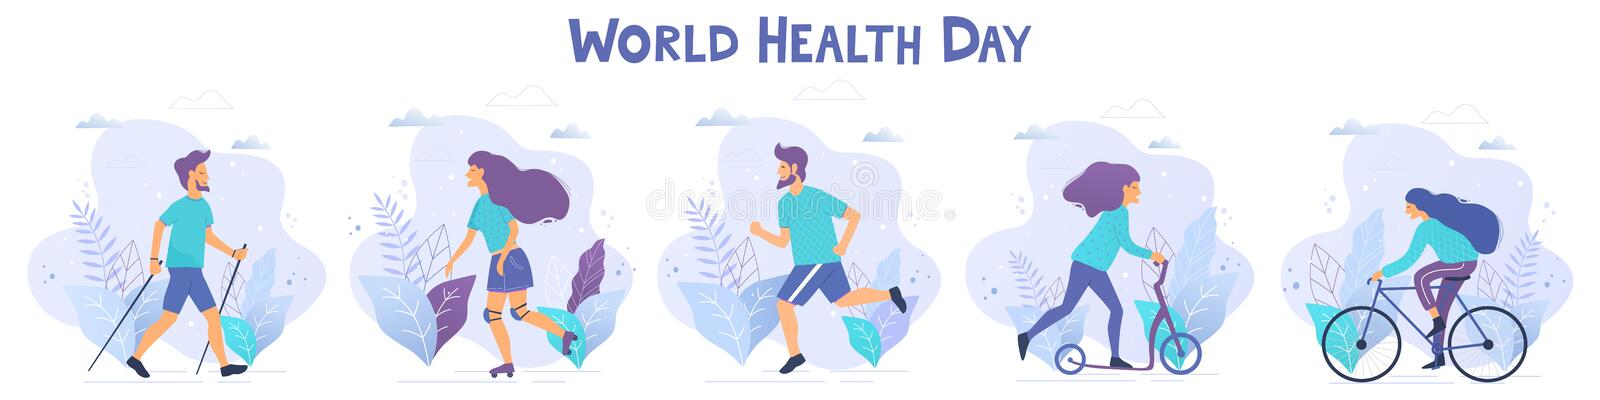 World health day vector illustration. Healthy lifestyle concept. Different physical activities stock illustration